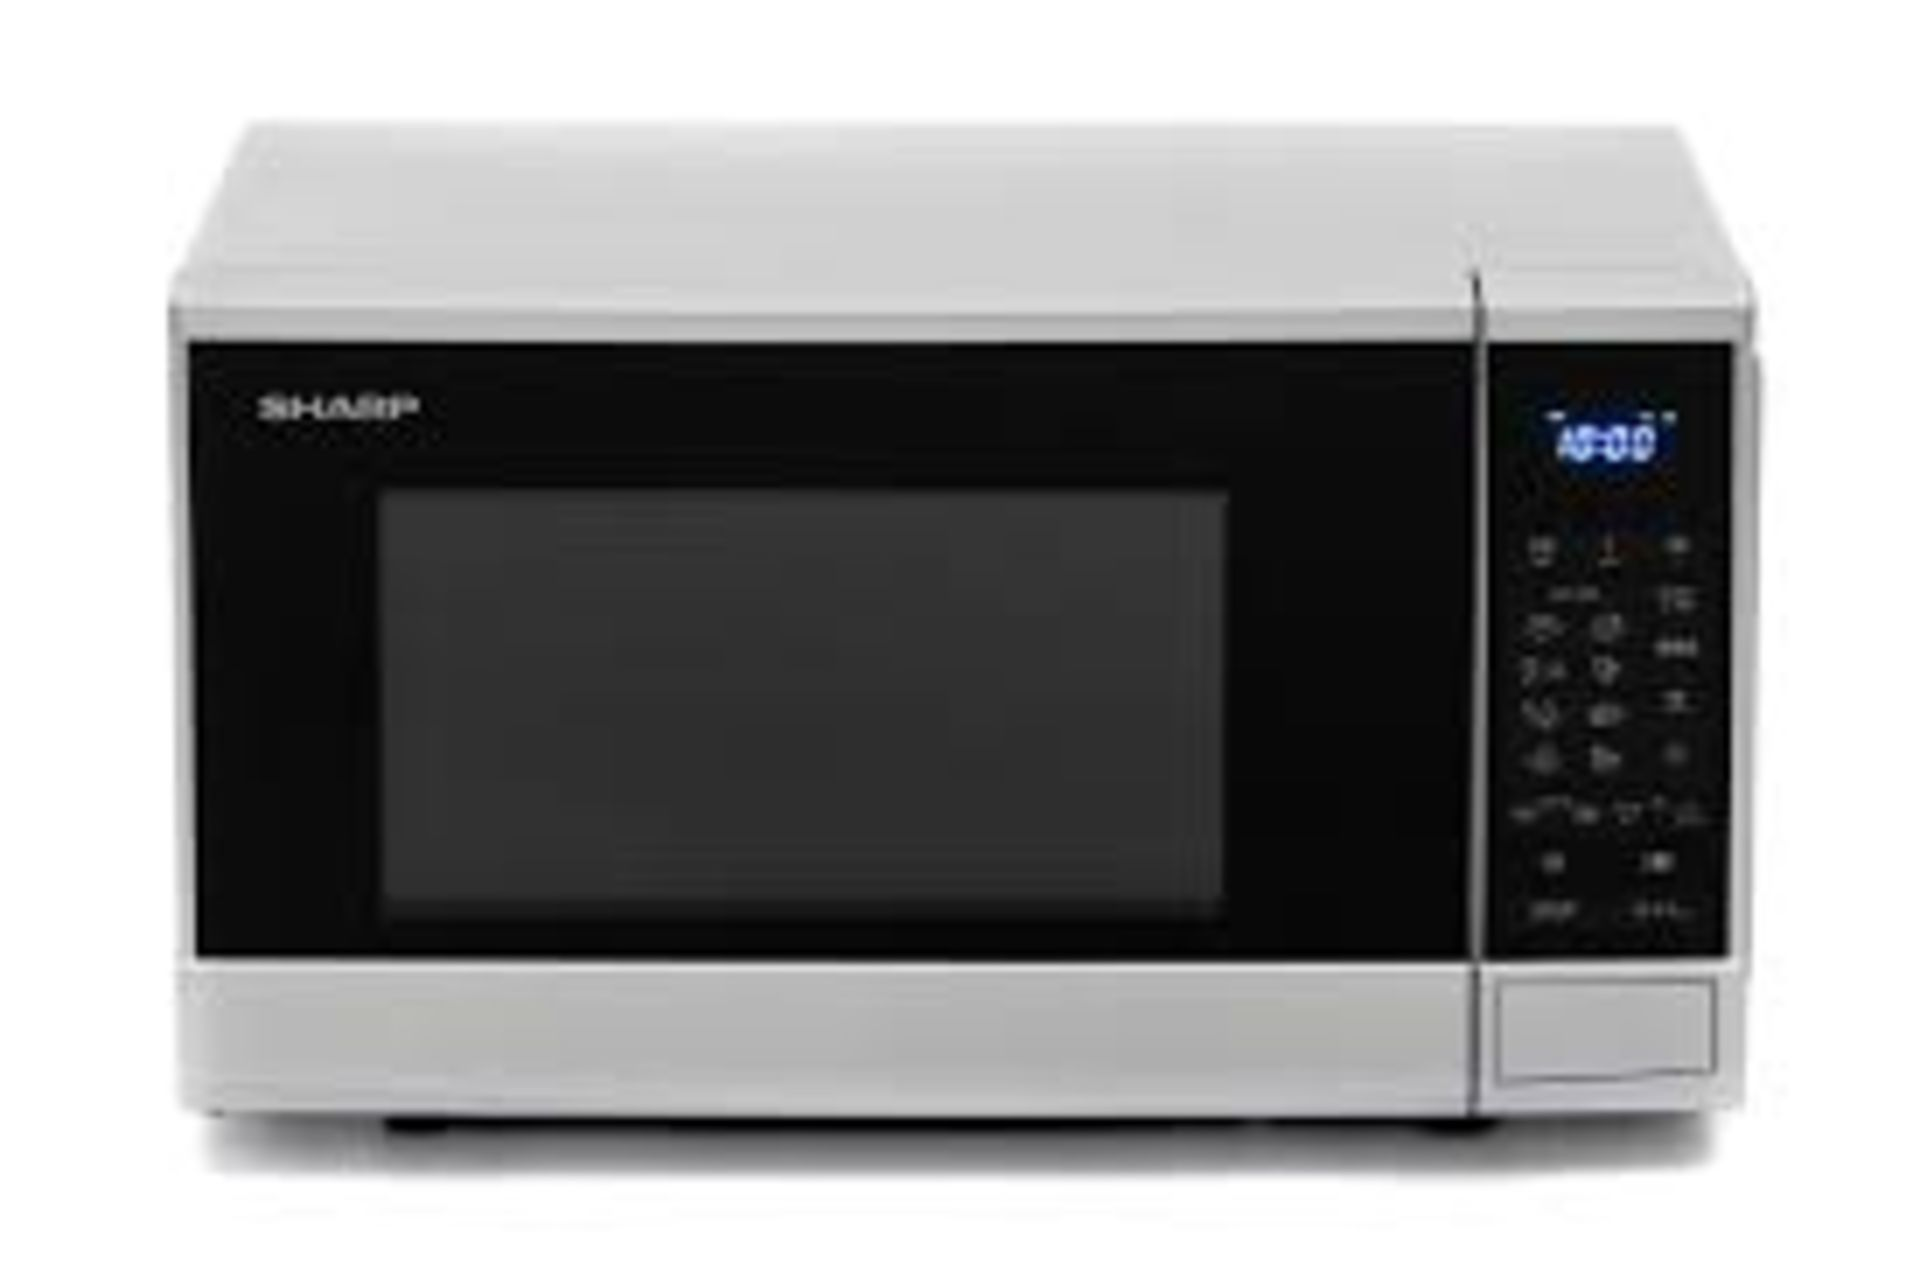 (15) 1x Sharp Microwave Oven Silver RRP £80. 800W, 20L, Weight / Time Defrost, Child Lock & Kitchen